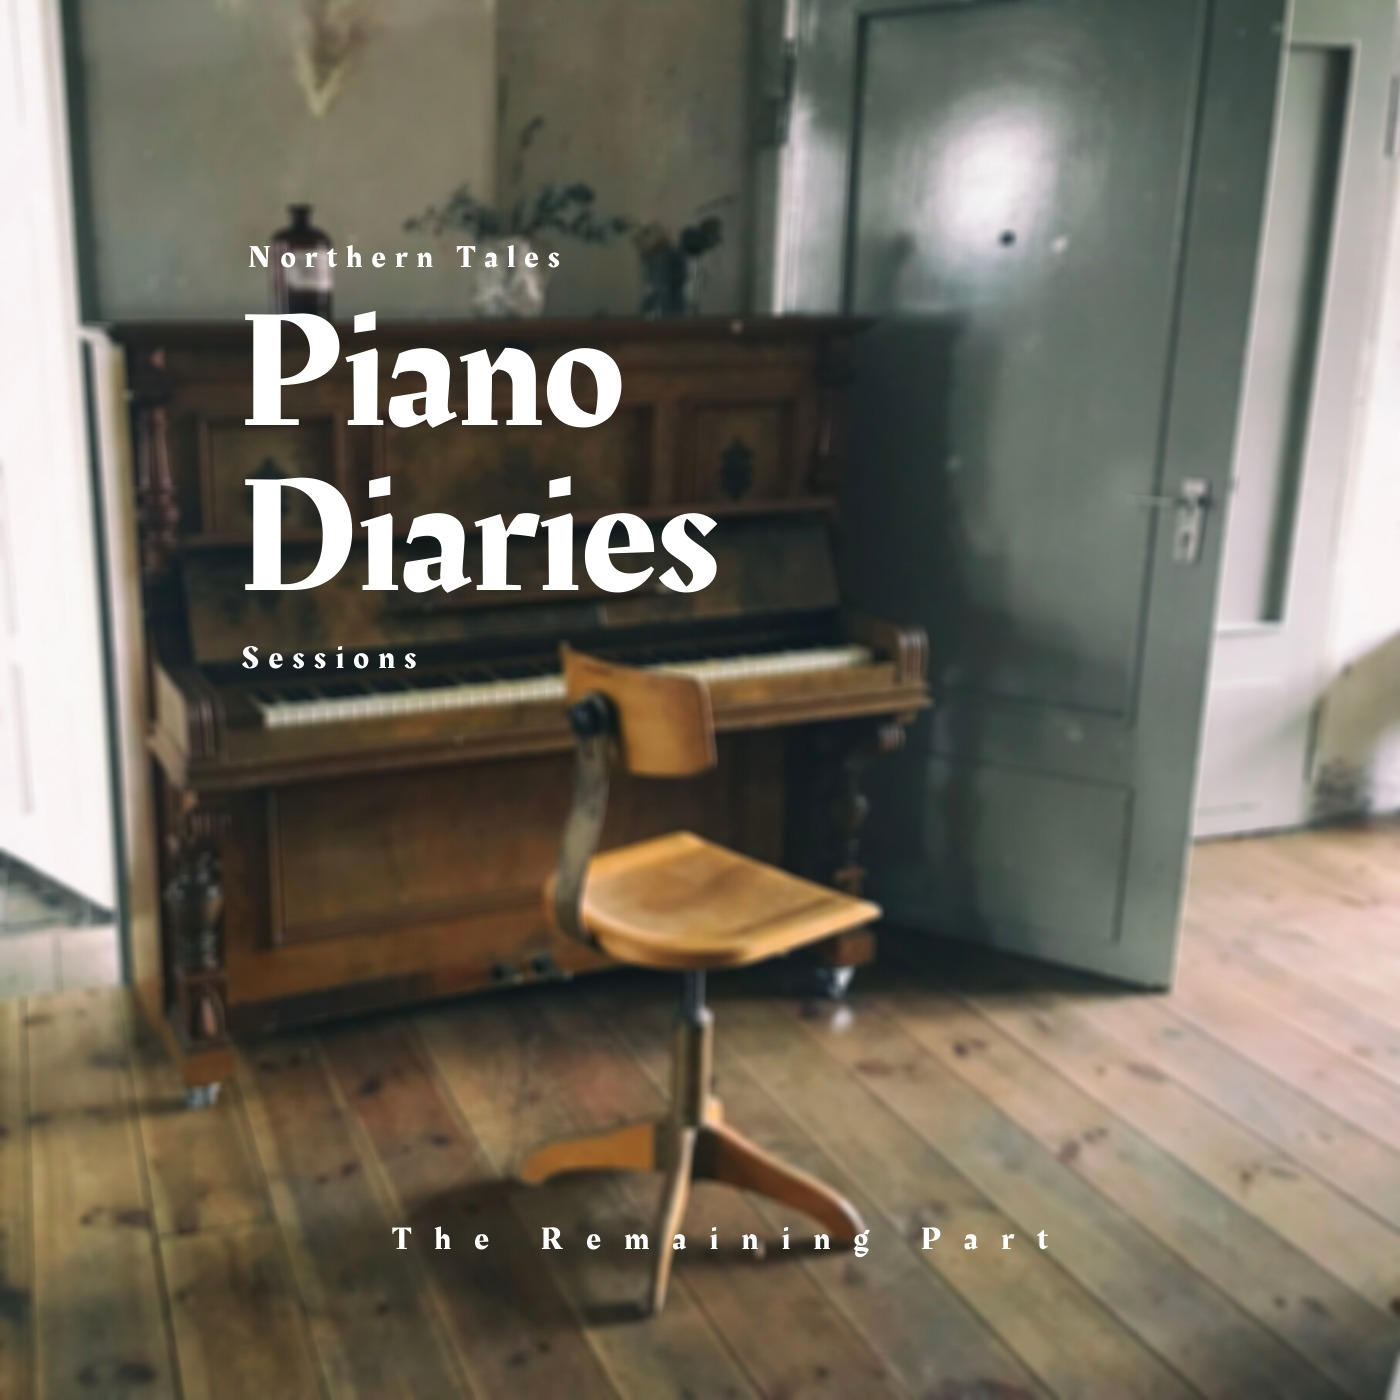 Piano Diaries I Northern Tales I The Remaining Part